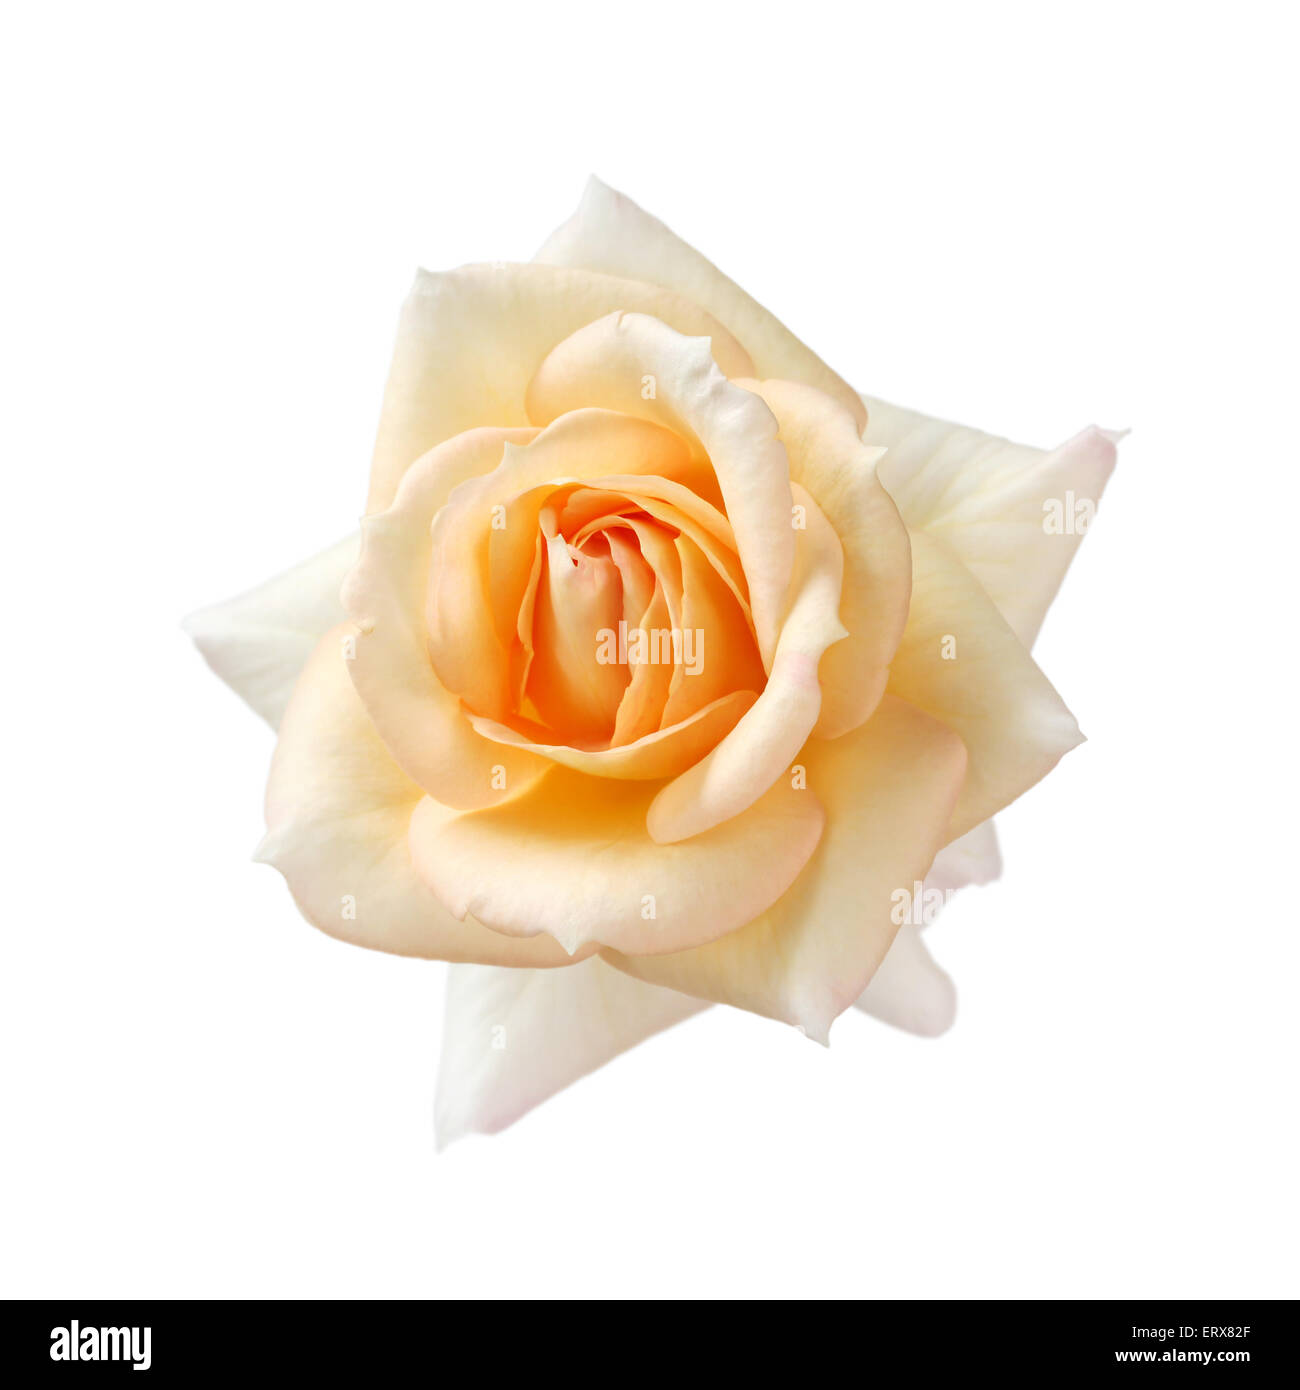 rose fujisan forever isolated on white background, apricot color Stock Photo